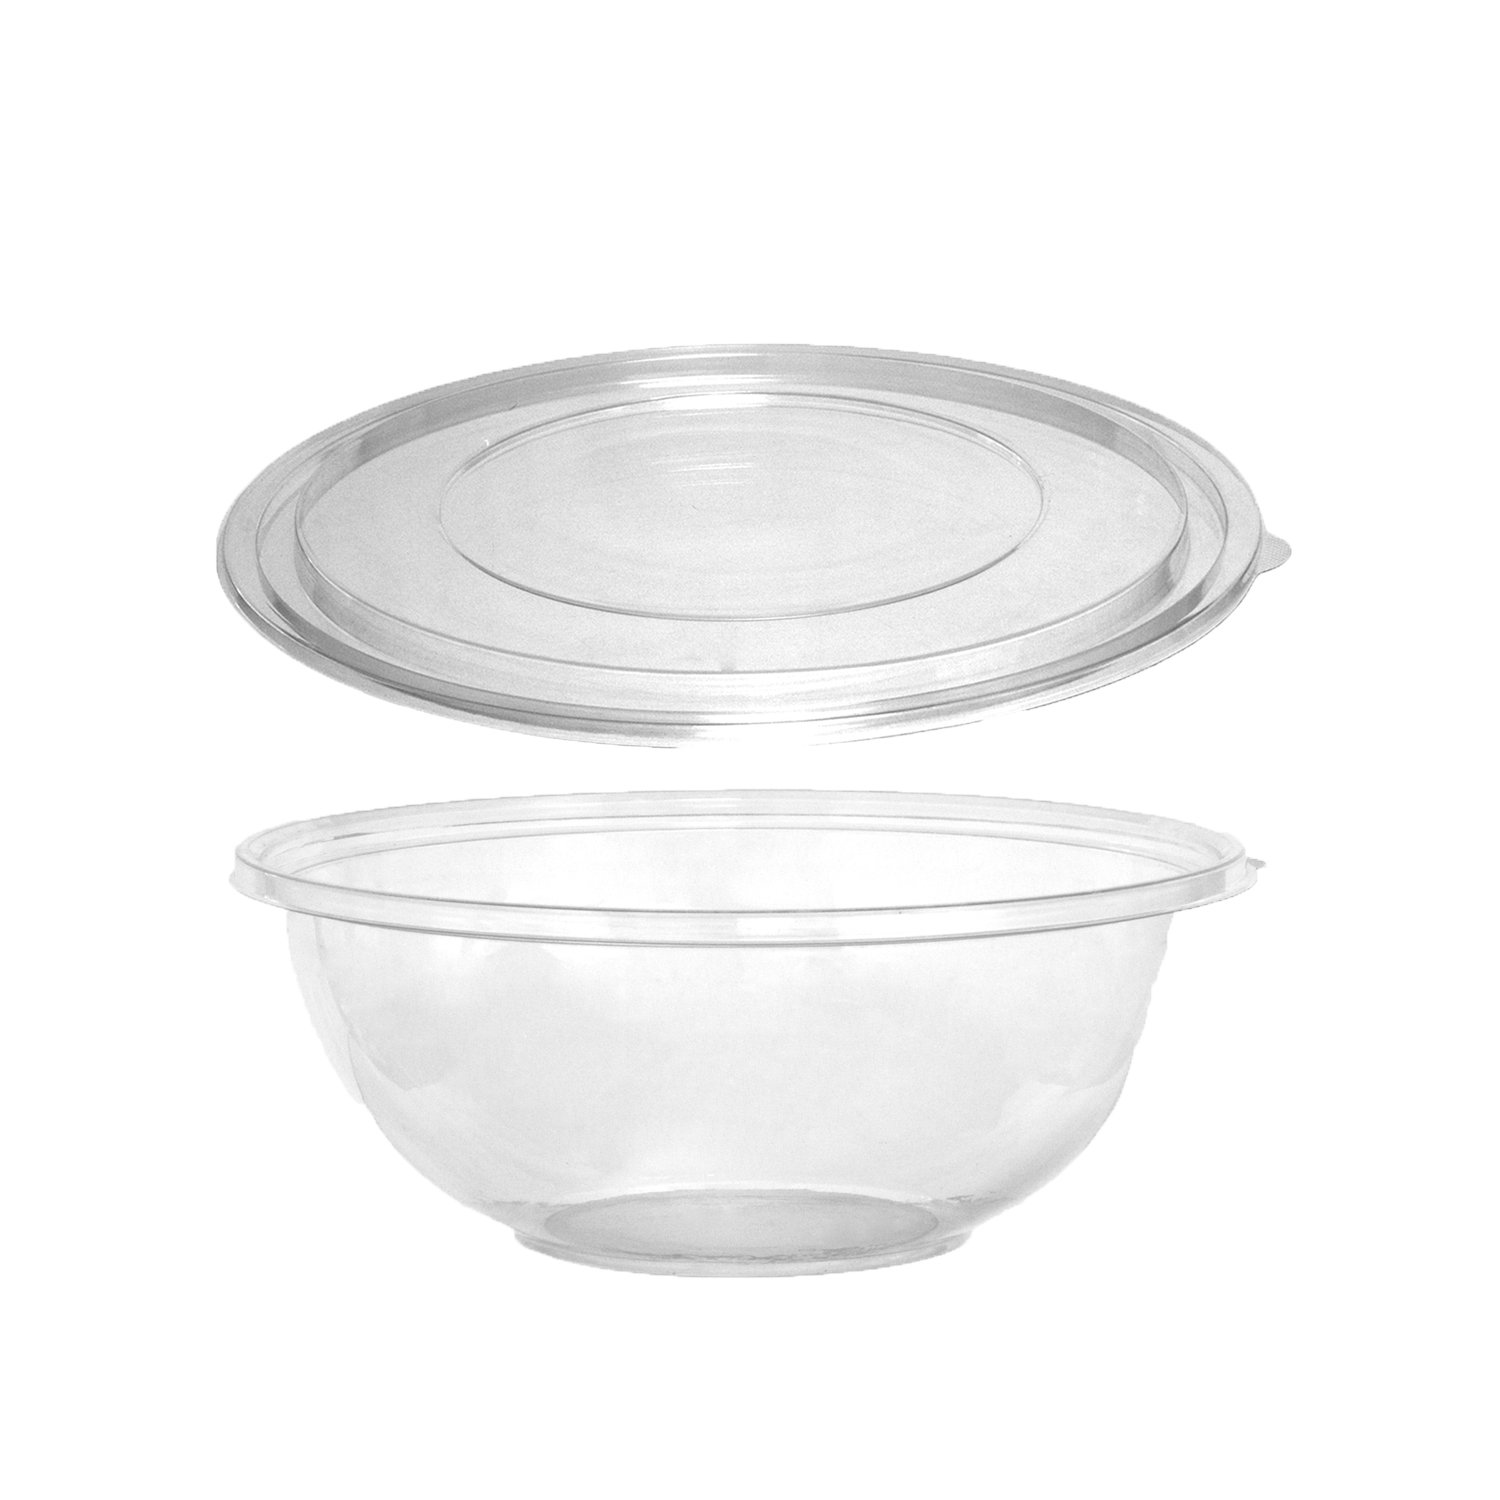 Party Essentials N508017 Soft Plastic 80-Ounce Serving/Catering Bowls, Black with Clear Lids, Set of 2